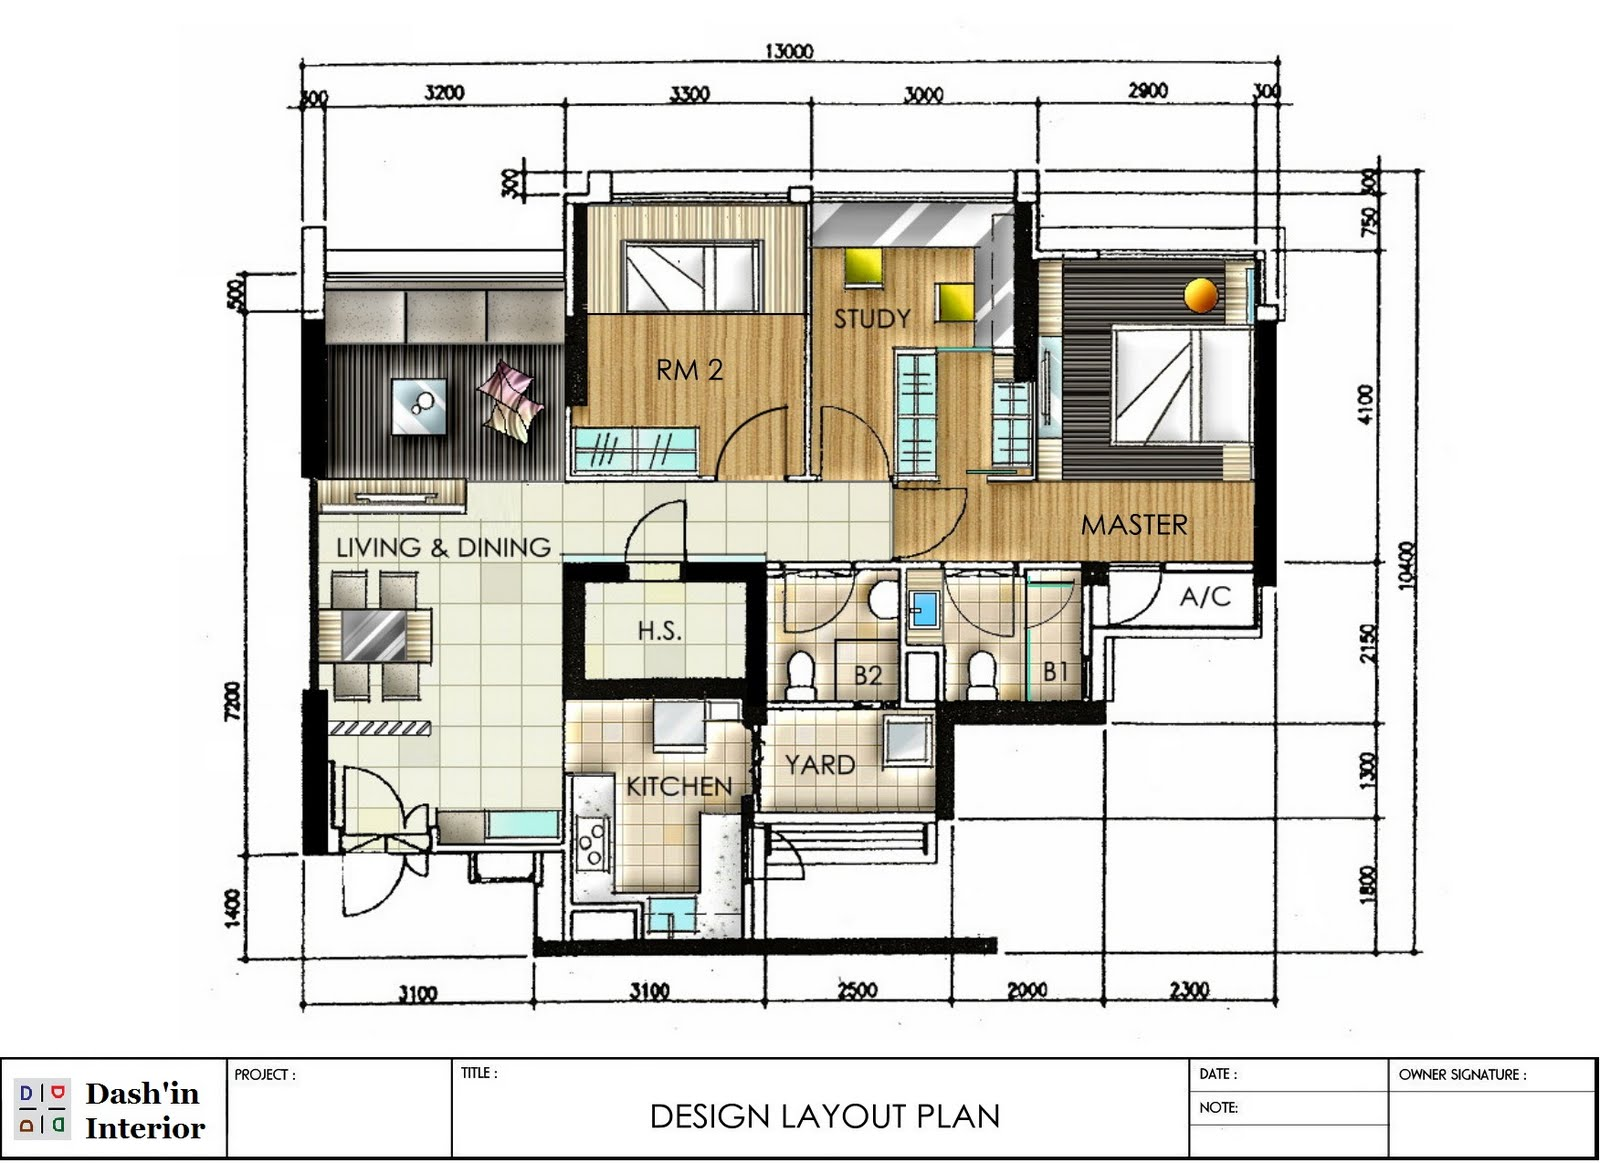 Dash 39 in interior hand drawn designs floor plan layout for Interior design layout drawing